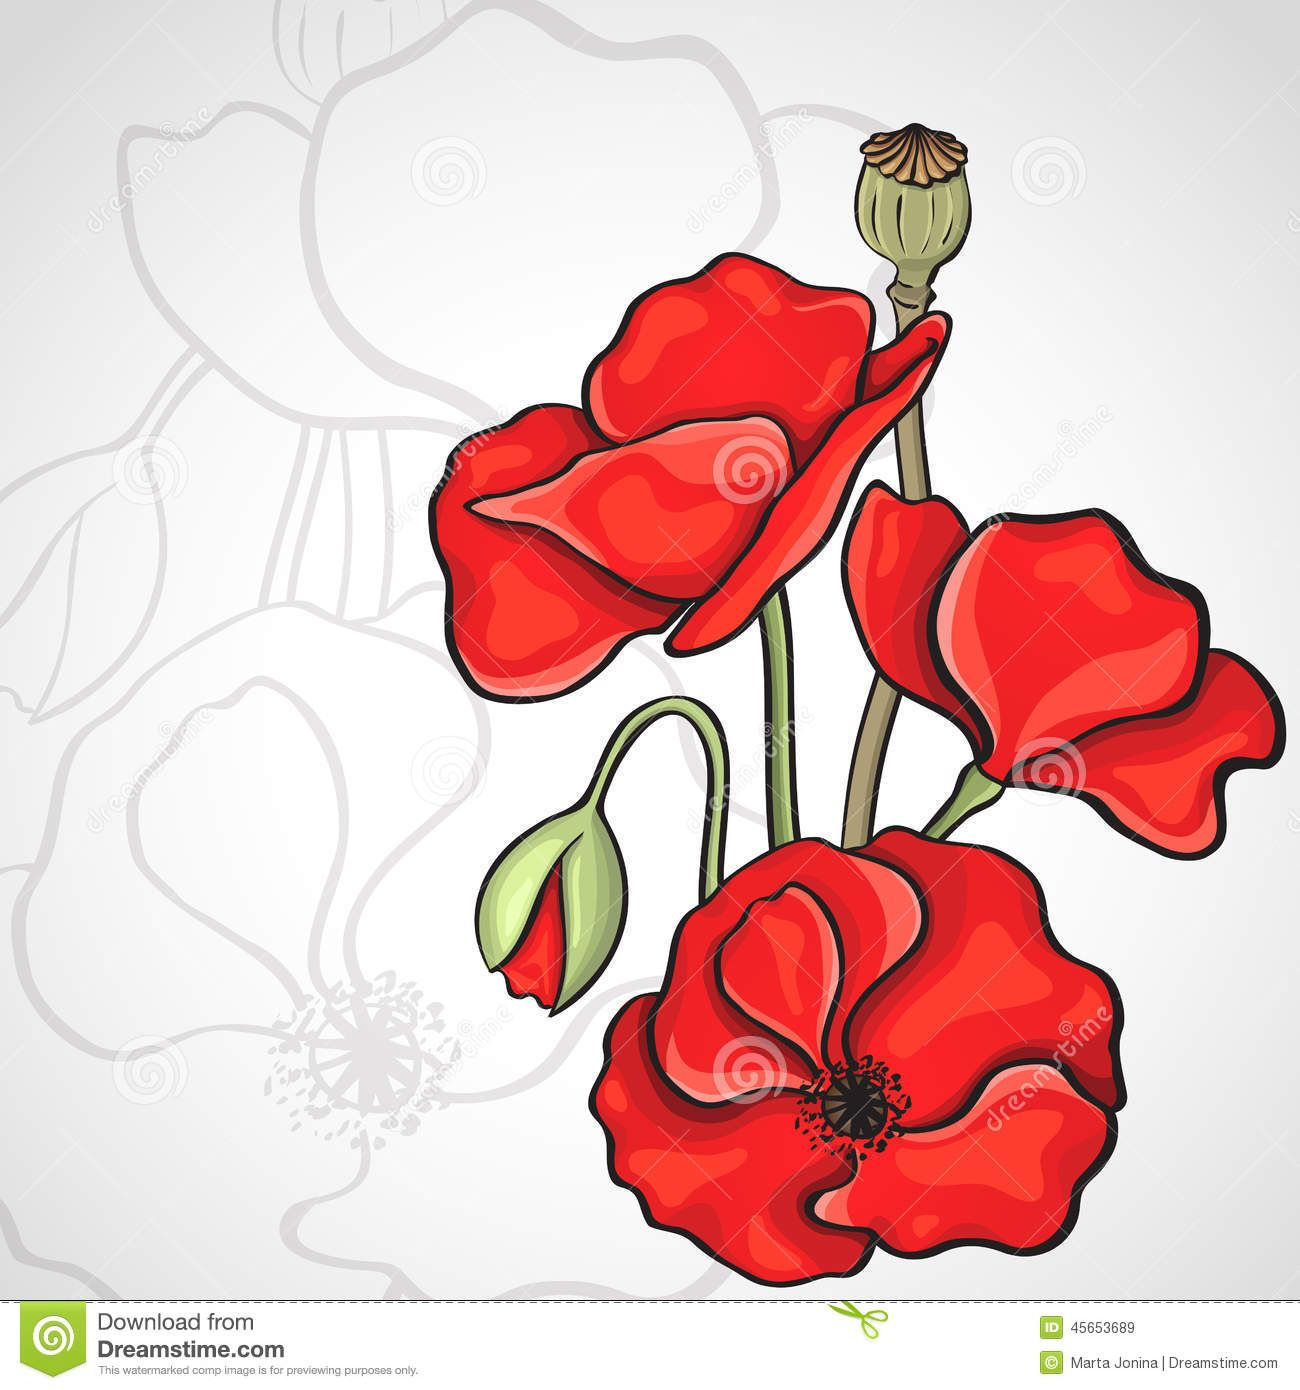 Poppy Drawing at GetDrawings.com | Free for personal use Poppy ...